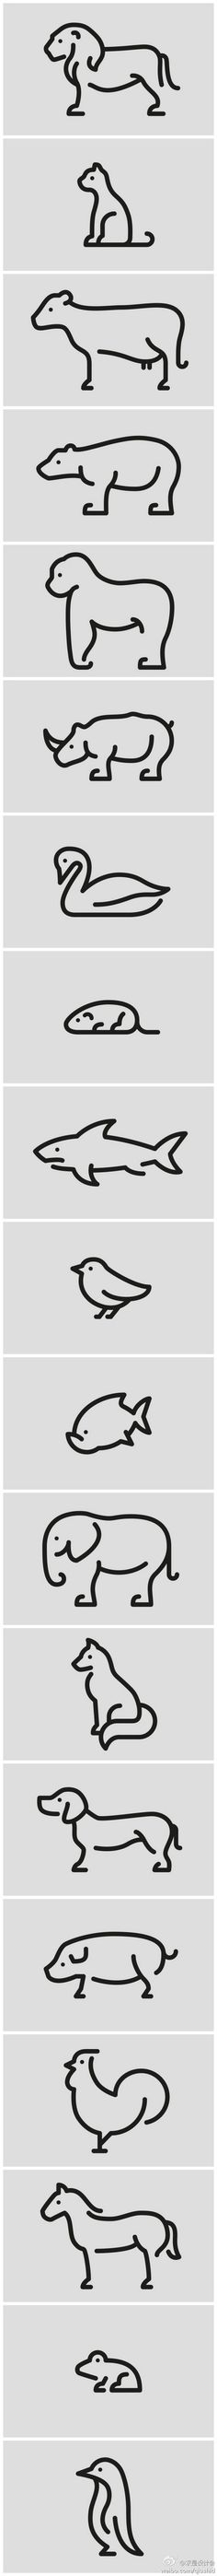 Pictograms via  weibo #Pictogram